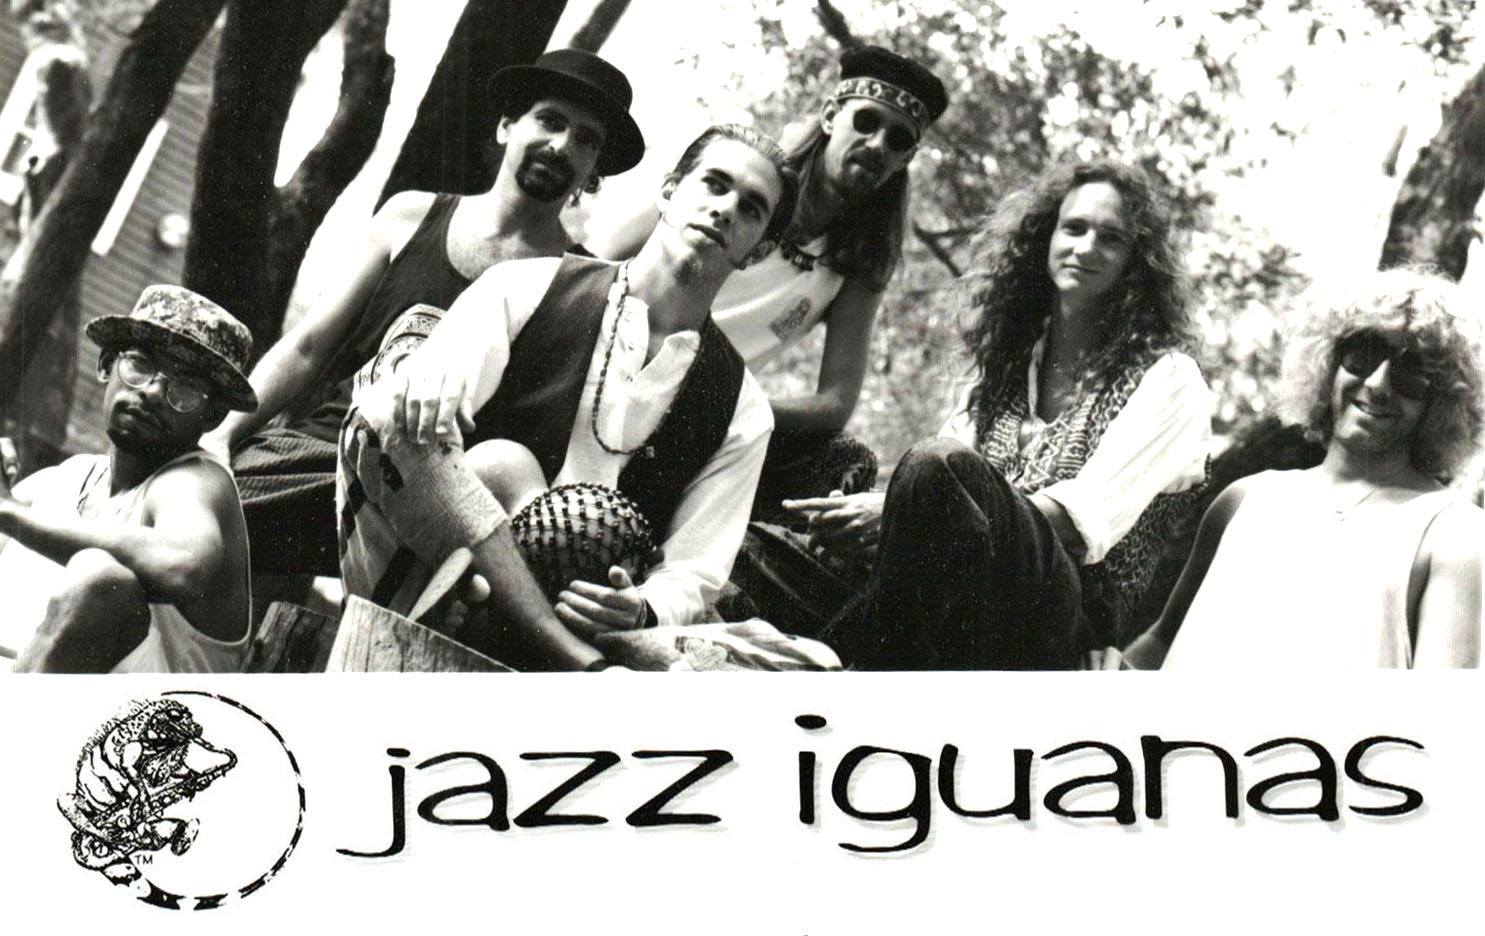 Jazz Iguanas early 90s Fairfax, Ca.